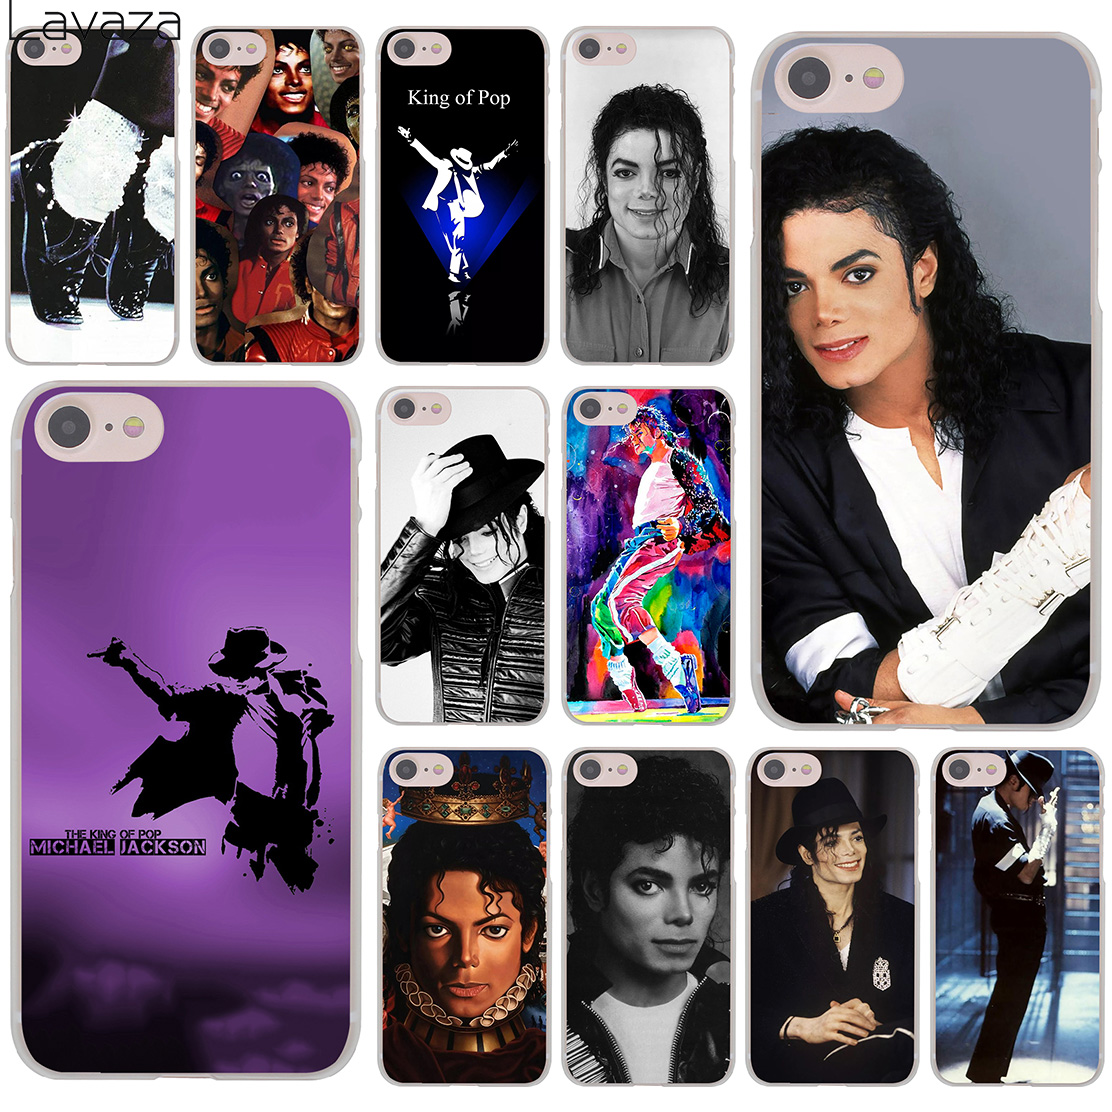 Lavaza michael jackson dance music hard phone case capa para iphone xr x 11 pro xs max 8 7 6 6 s 5 5s se 4s 4 10